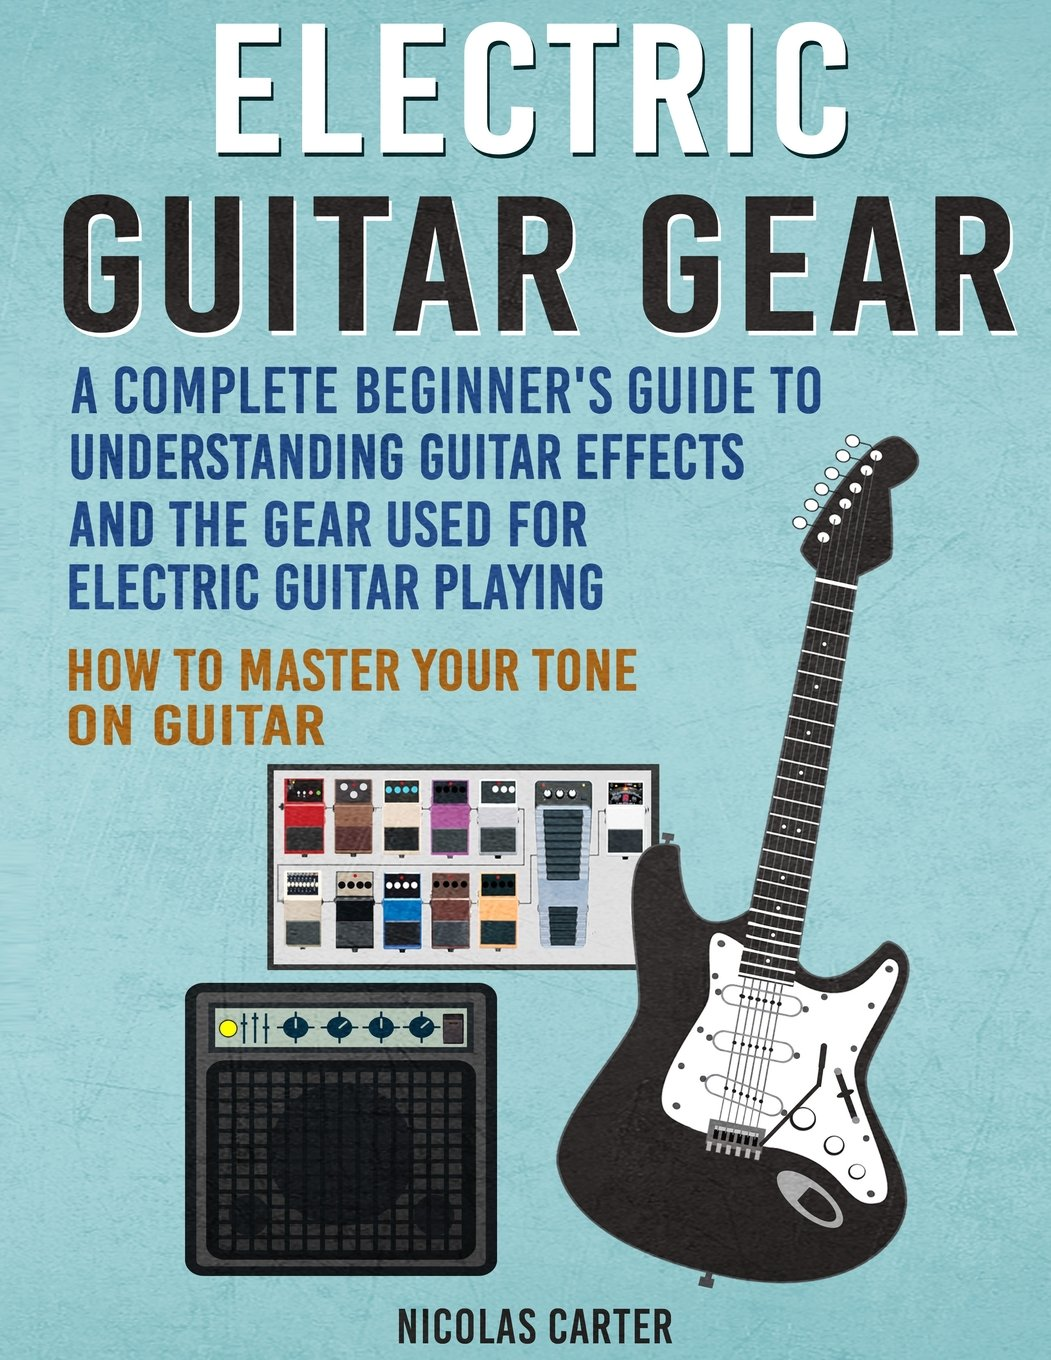 Electric Guitar Gear: A Complete Beginner's Guide To Understanding Guitar Effects And The Gear Used For Electric Guitar Playing & How To Master Your Tone on Guitar (Guitar Mastery) (Volume 3) PDF